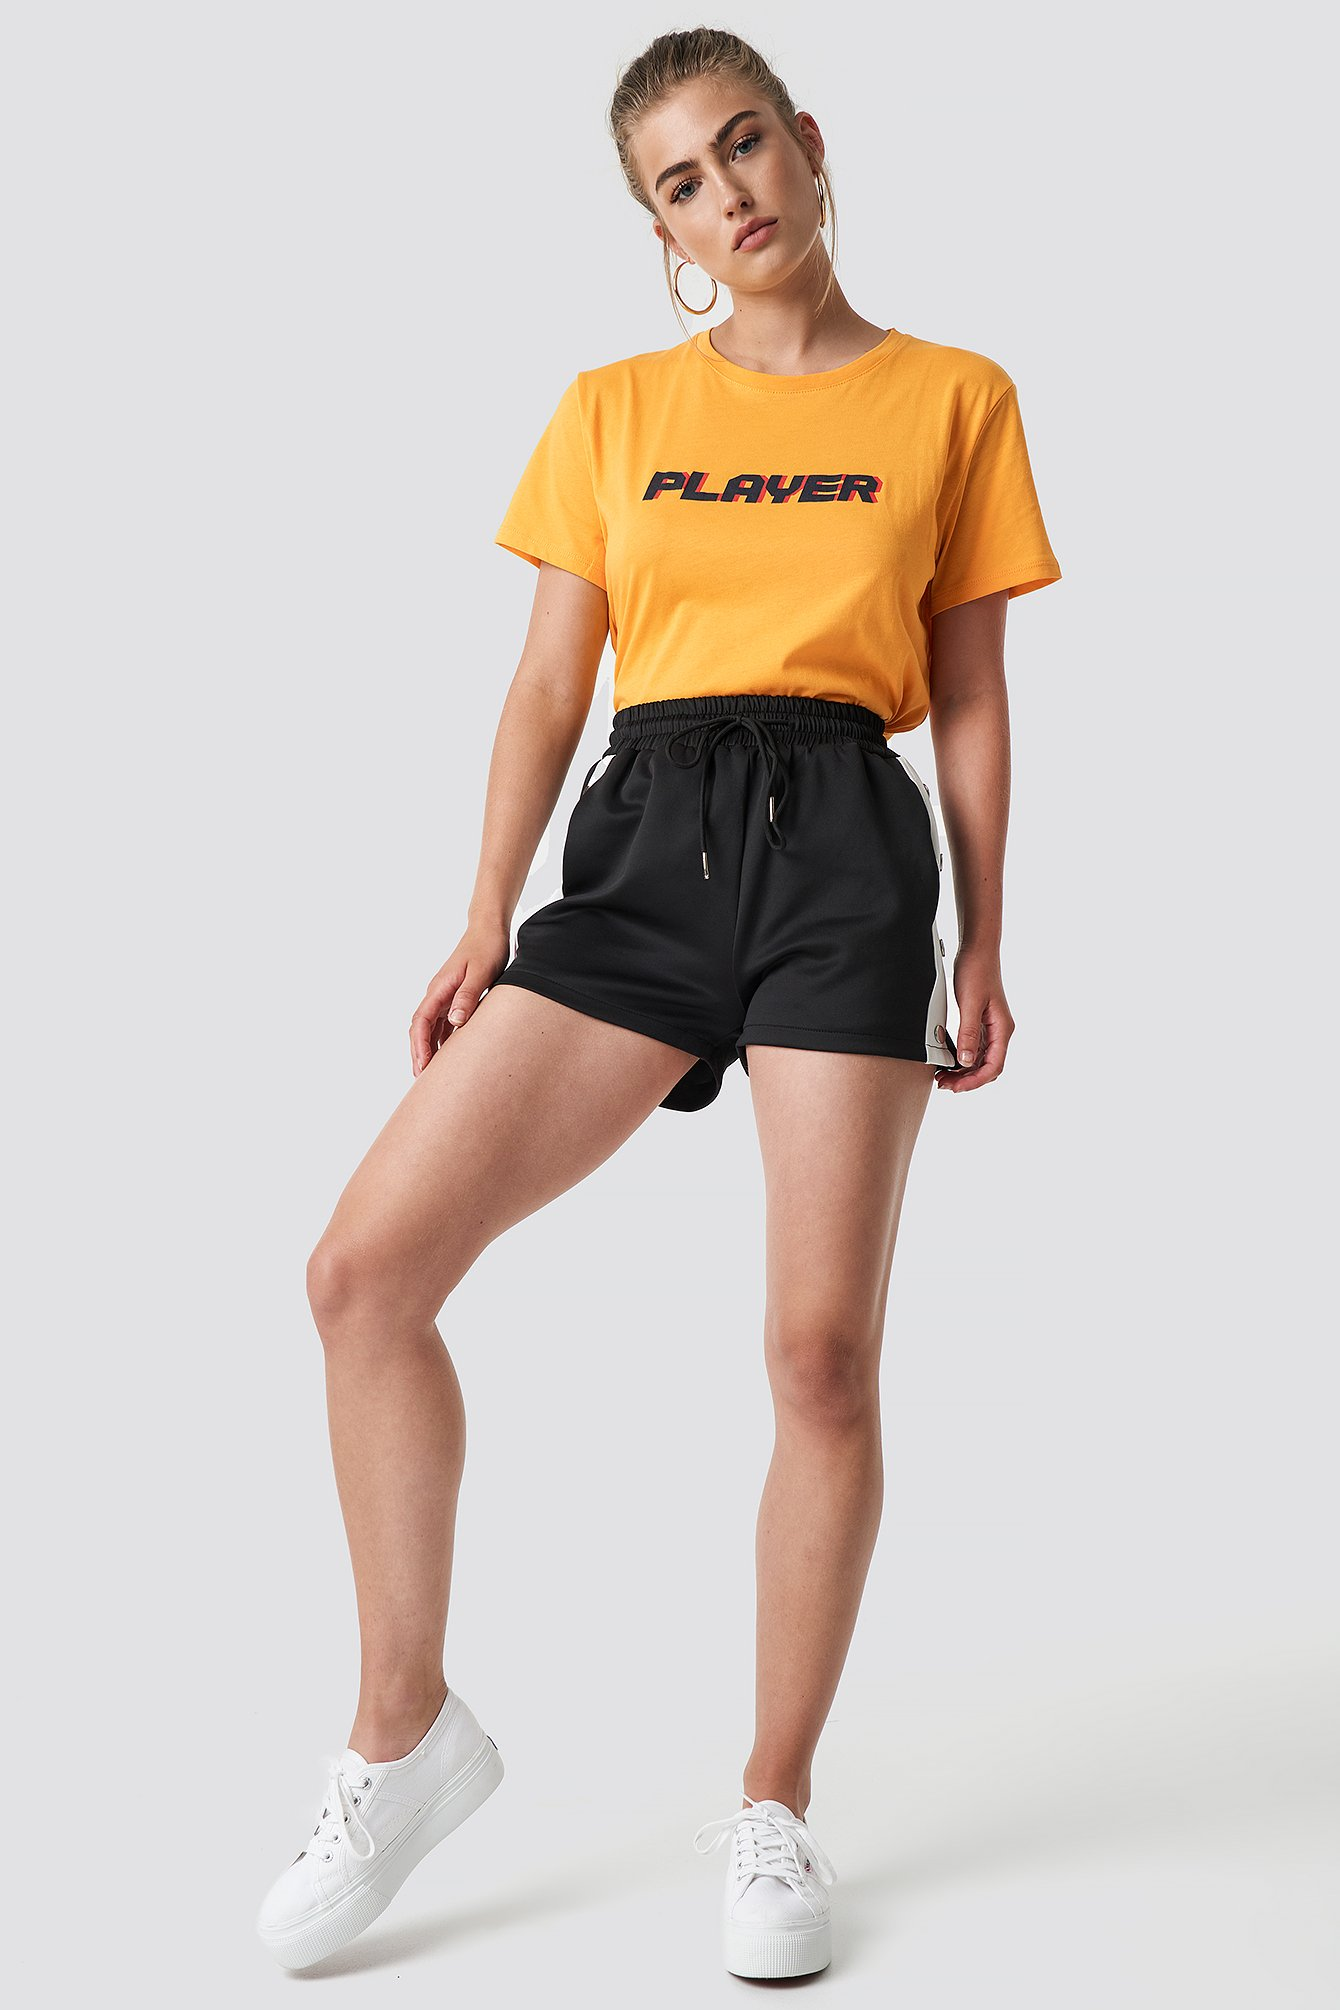 Dark Yellow Player Oversized Tee